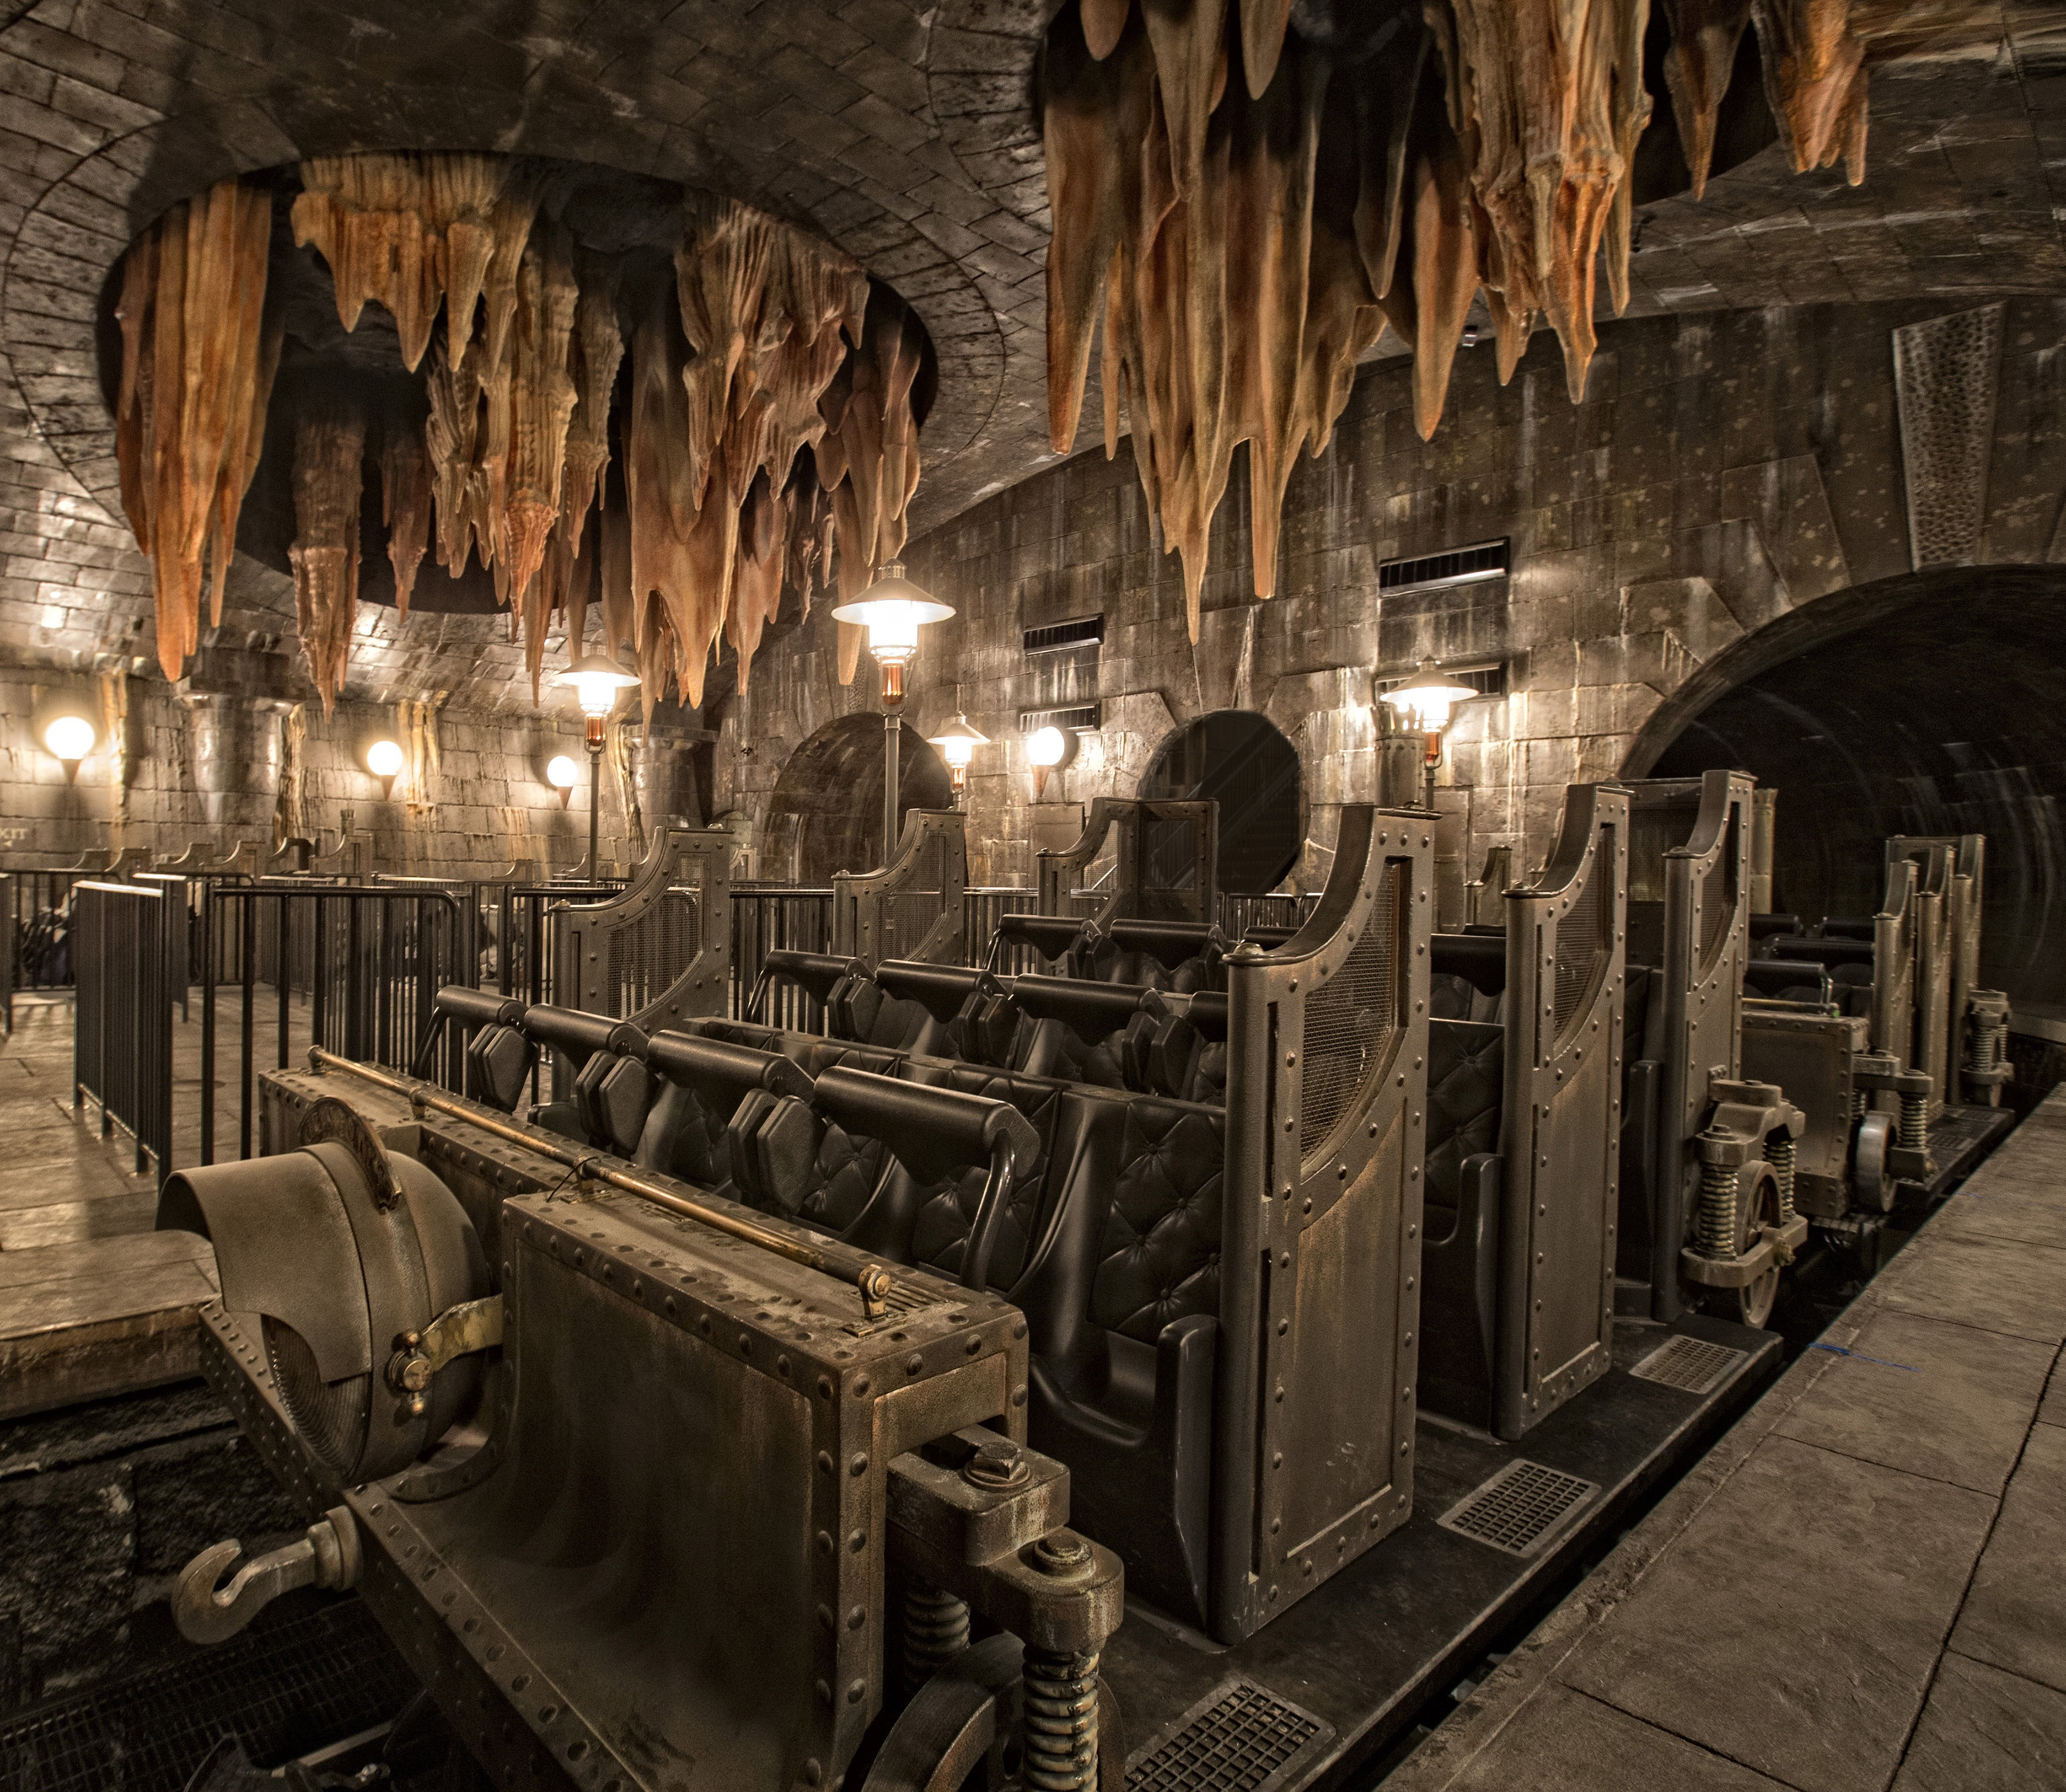 The multi-dimensional, multi-sensory attraction, Harry Potter and the Escape from Gringotts. Height Restriction 42 inches.